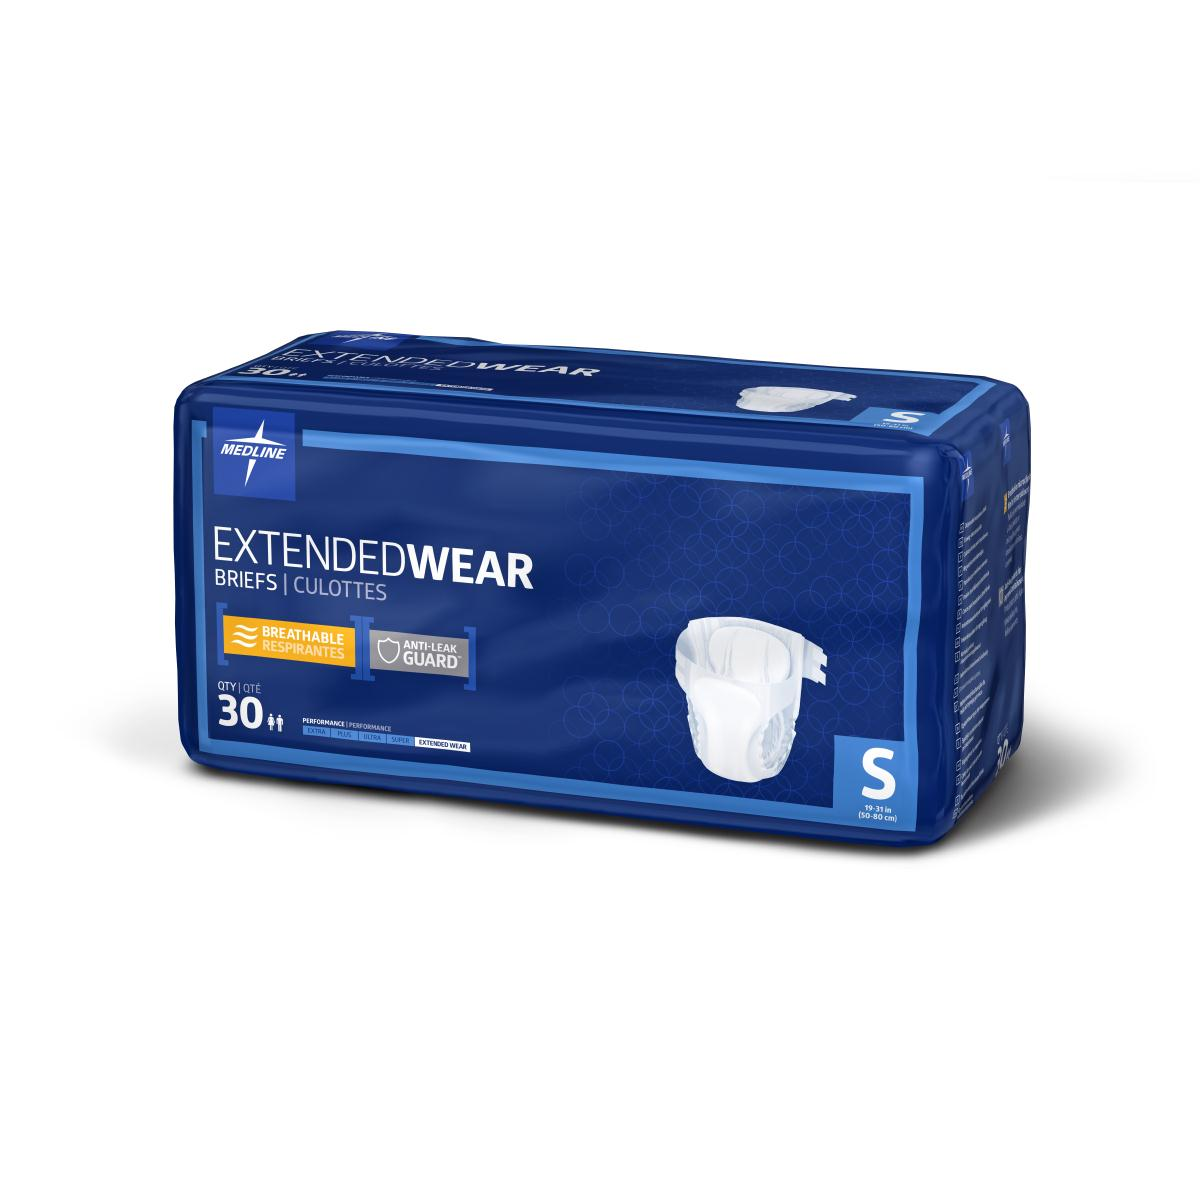 Extended Wear Briefs   AvaCare Medical